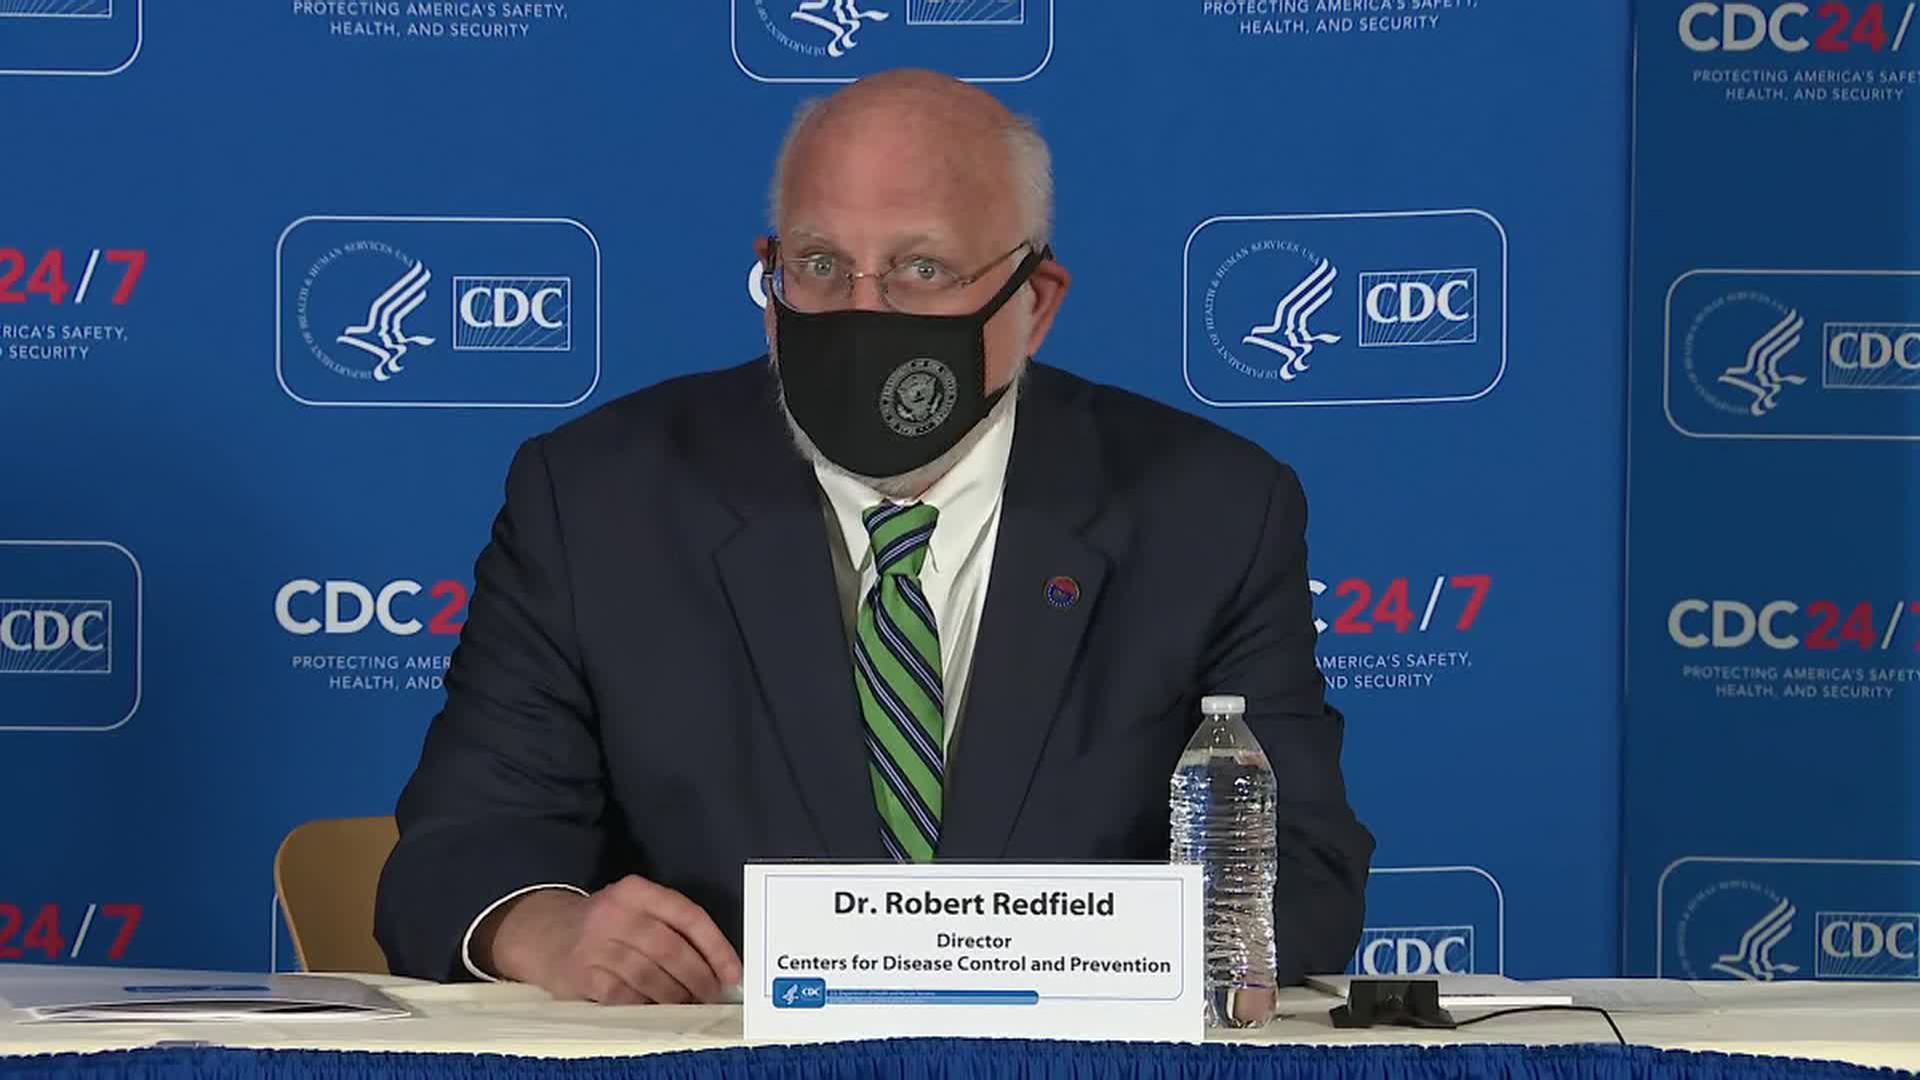 Director of the Centers for Disease Control and Prevention Dr. Robert Redfield speaks during a press conference on December 4 in Atlanta.